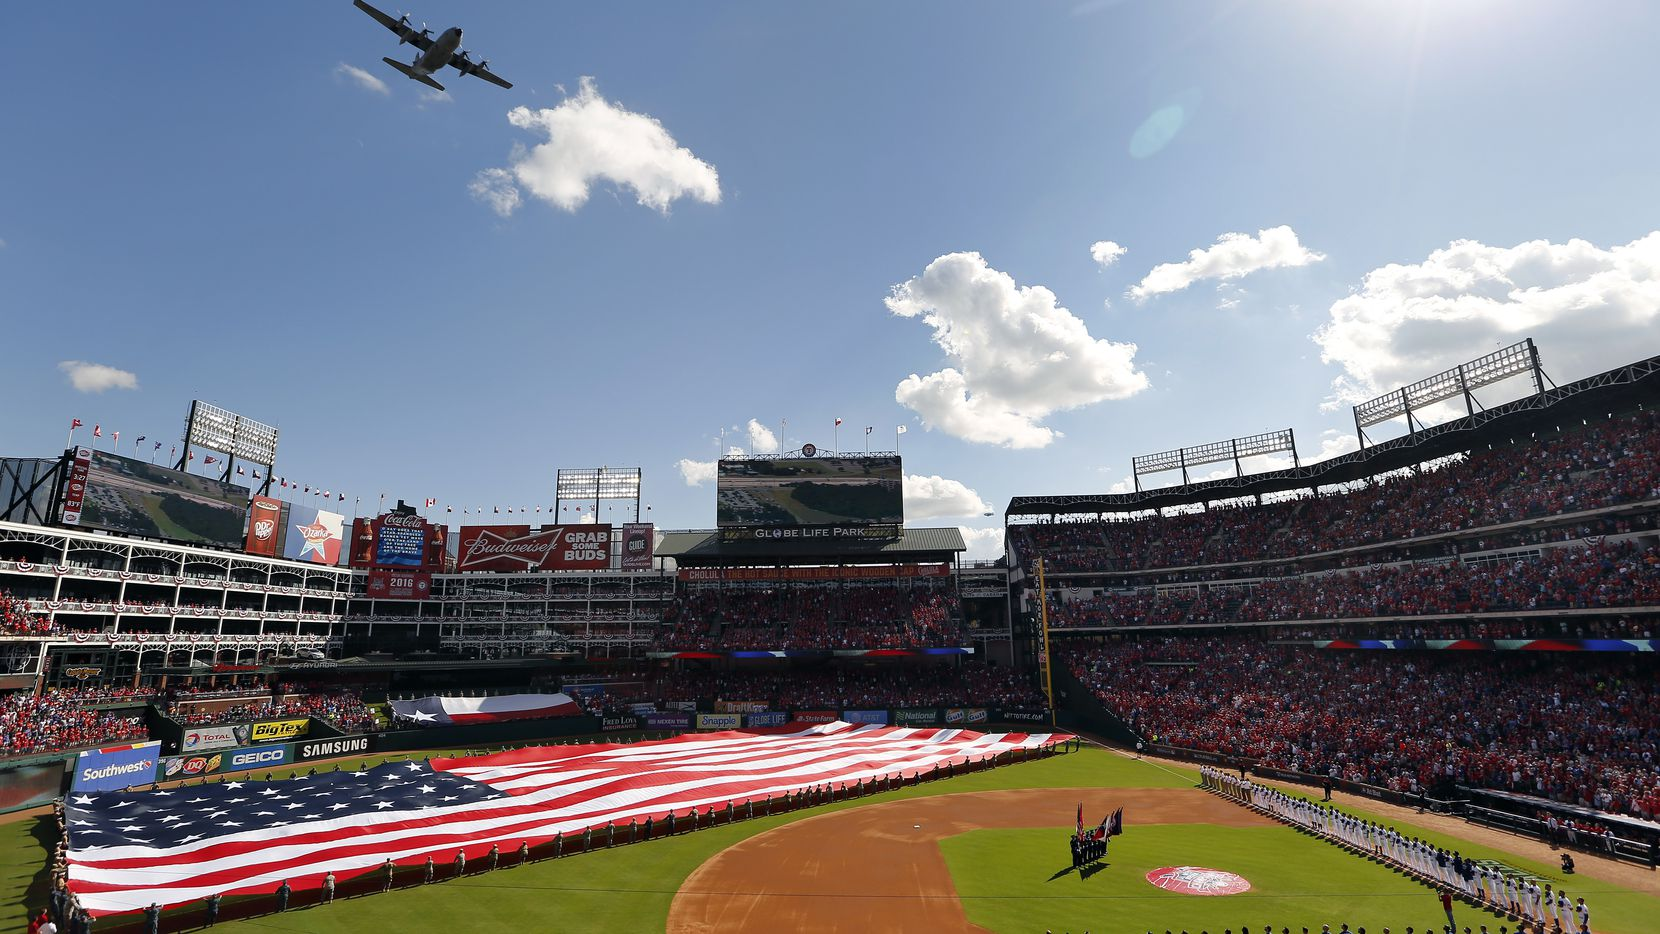 A C-130 from the 136th Airlift Wing Texas Air National Guard performs the flyover during the National Anthem before the ALDS Series Game 1 at Globe Life Park in Arlington, Thursday, October 6, 2016. (Tom Fox/The Dallas Morning News)